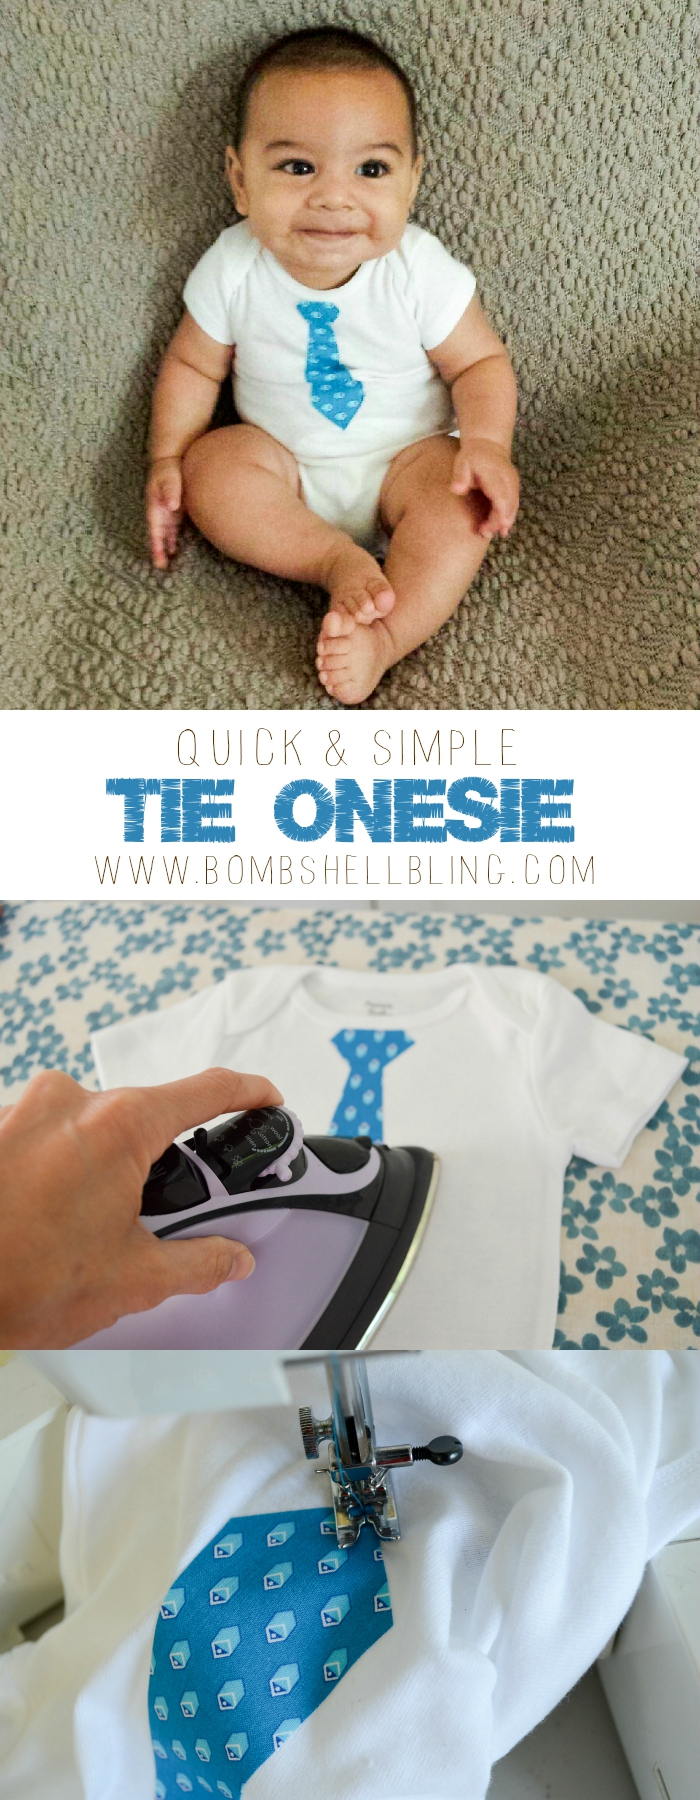 Easy Tie Dye Tips And Step By Step Instructions: Quick & Simple Tie Onesie Tutorial